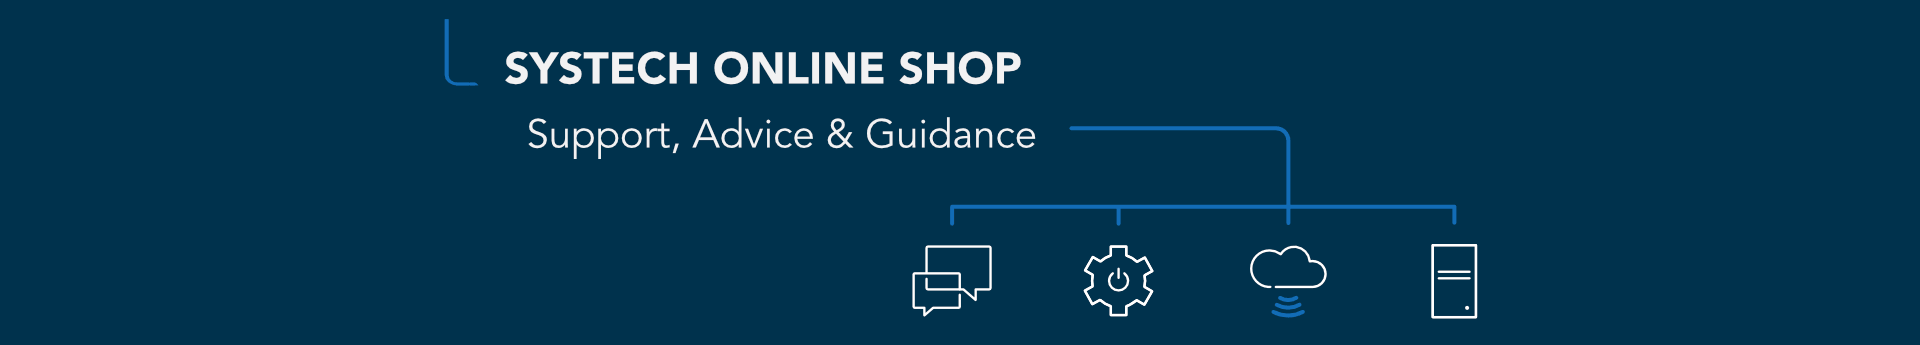 Systech Online Shop, Support advice and guidance.